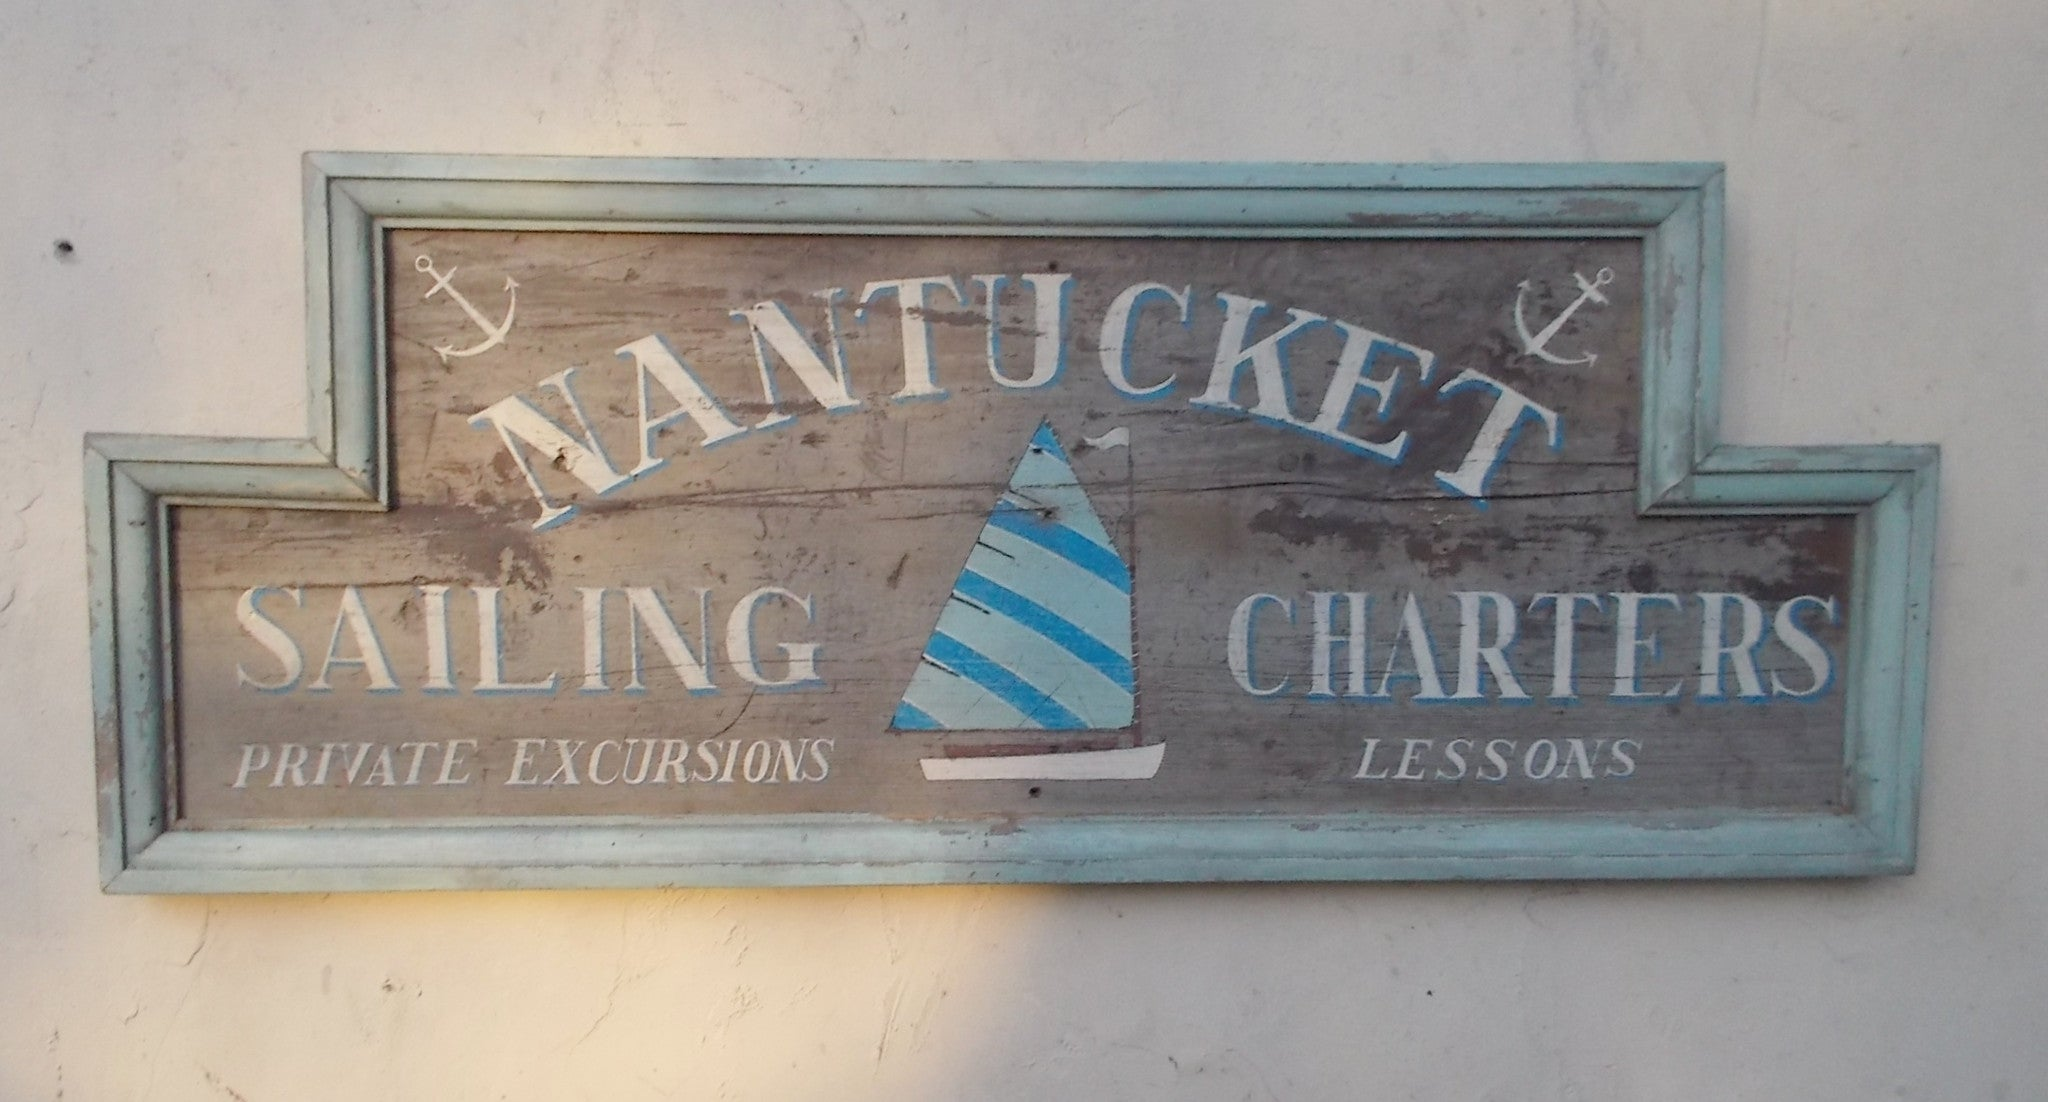 Nantucket Sailing Charters